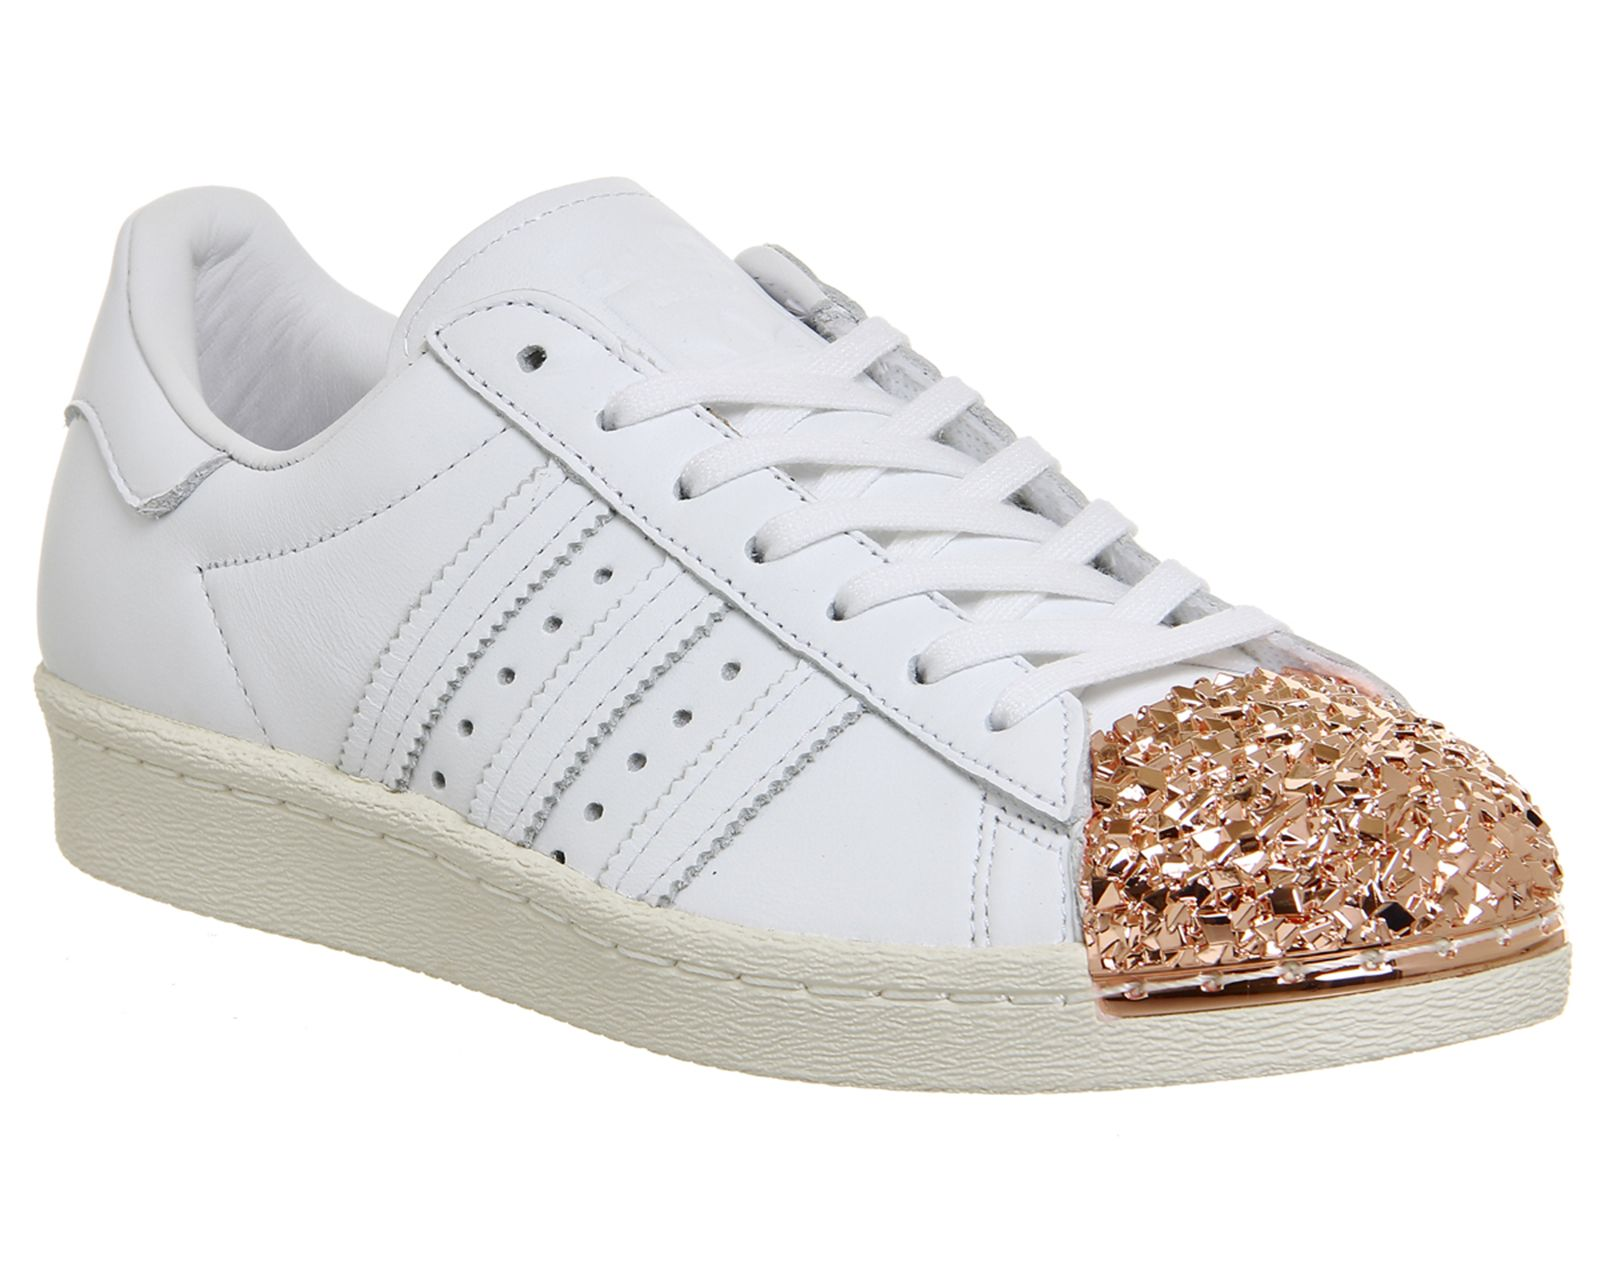 Cheap Adidas superstar 2 womens leather 019784 floral white fushia trainers